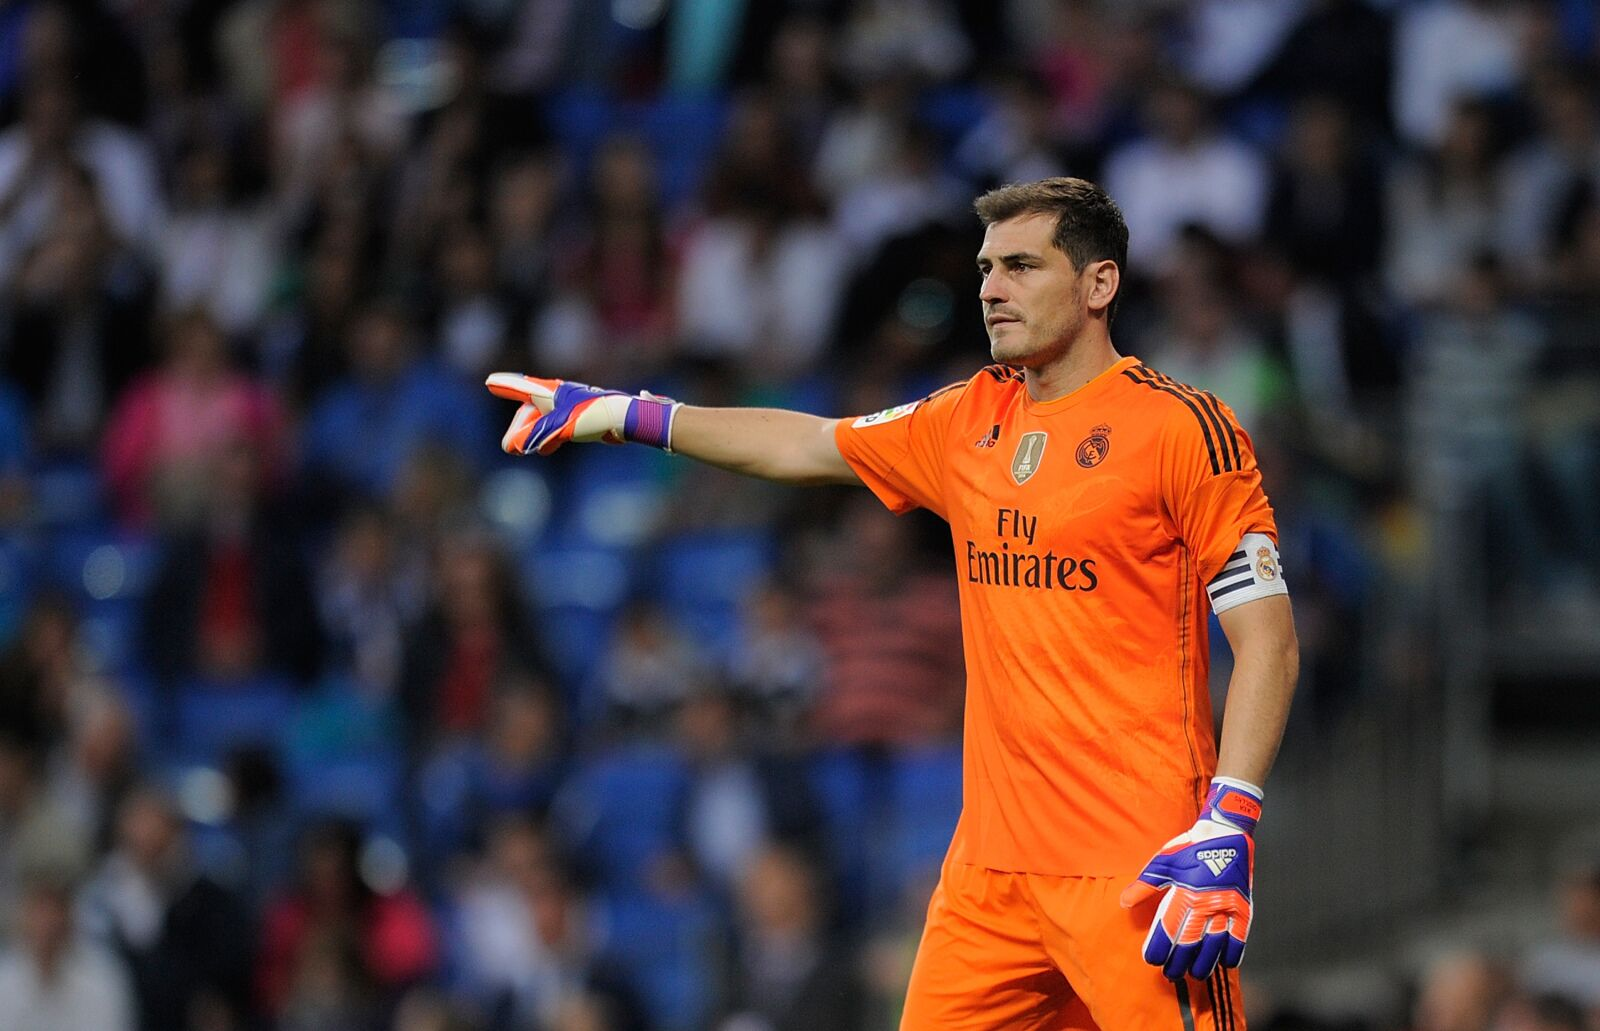 Iker Casillas looking to set up a transfer for Real Madrid soon